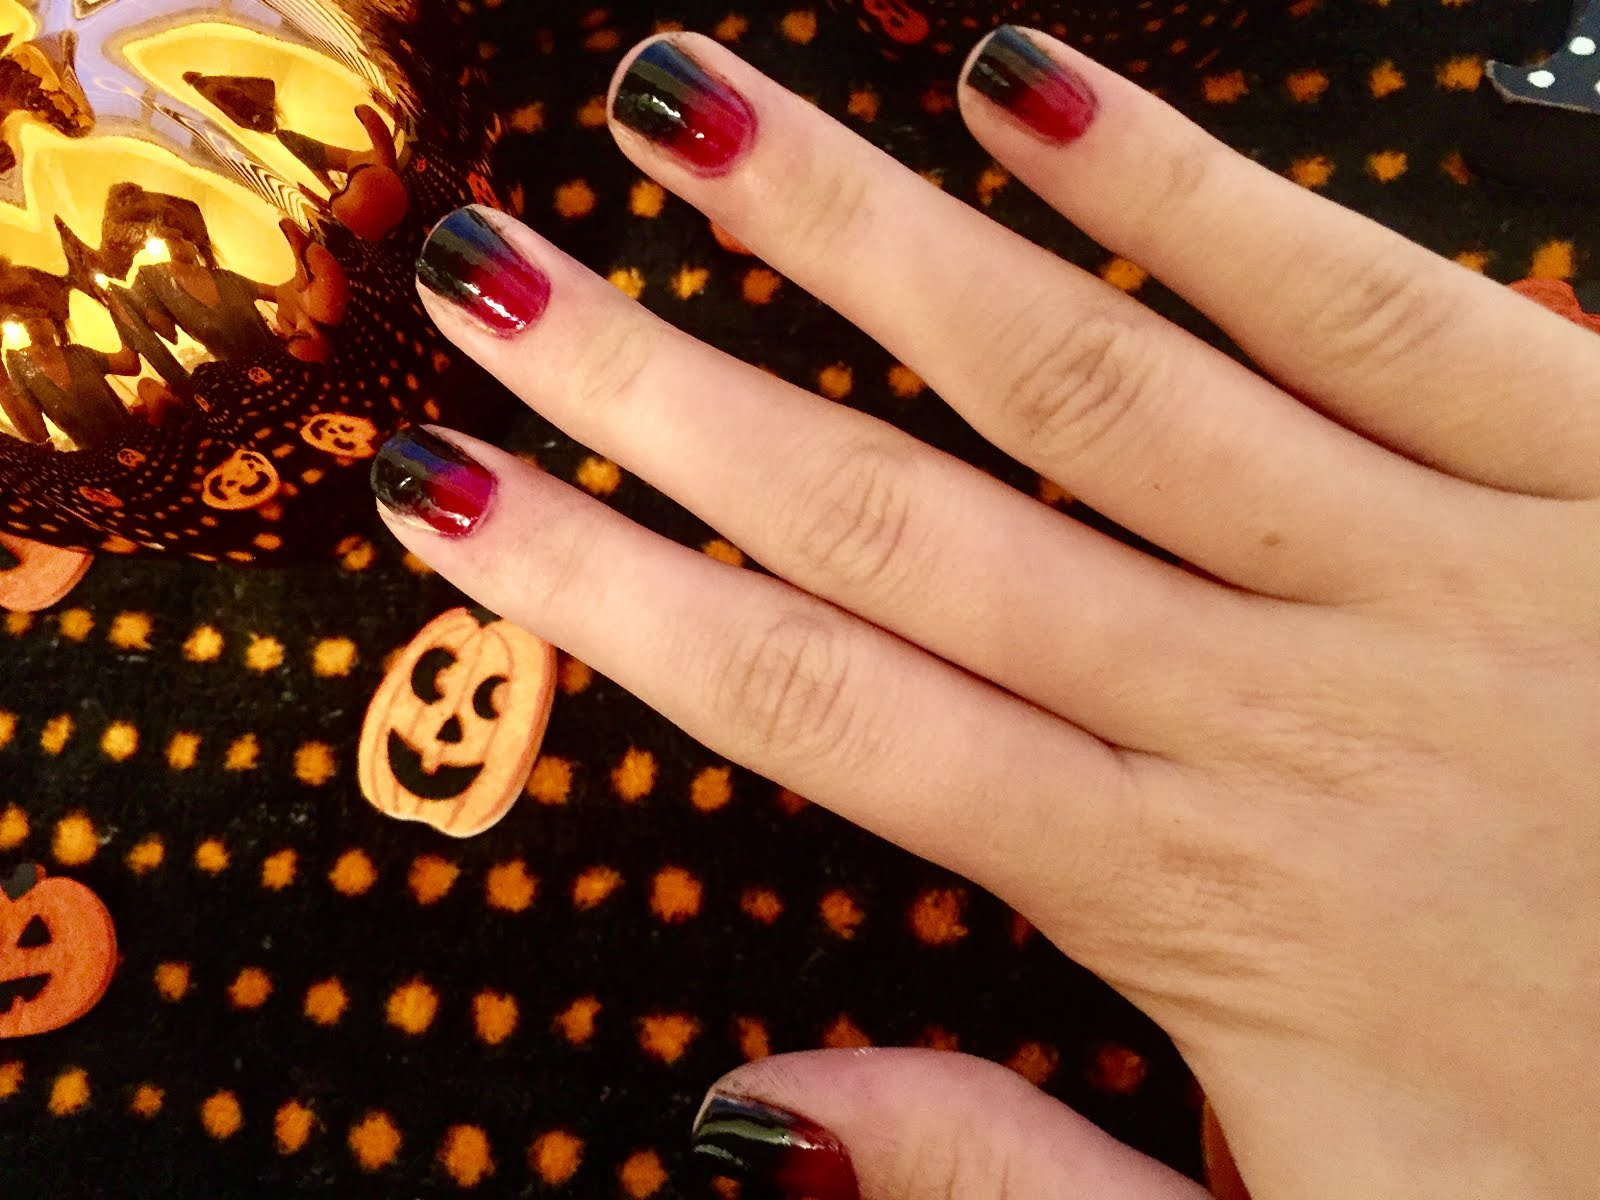 BLOGTOBER DAY 2: EASY HALLOWEEN NAILS | Being Heather